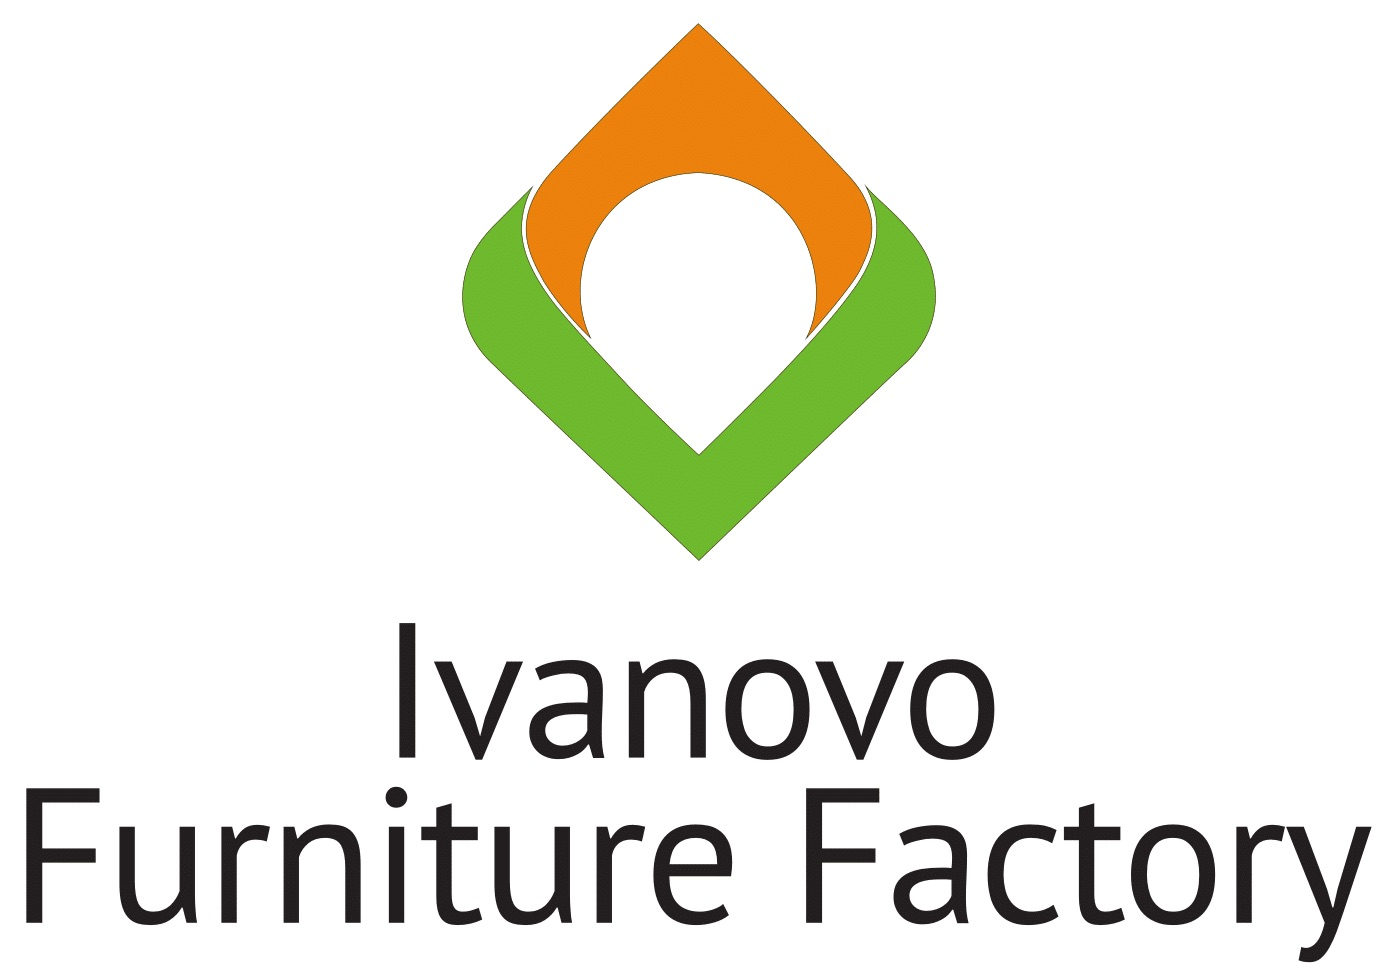 Ivanovo Furniture Factory